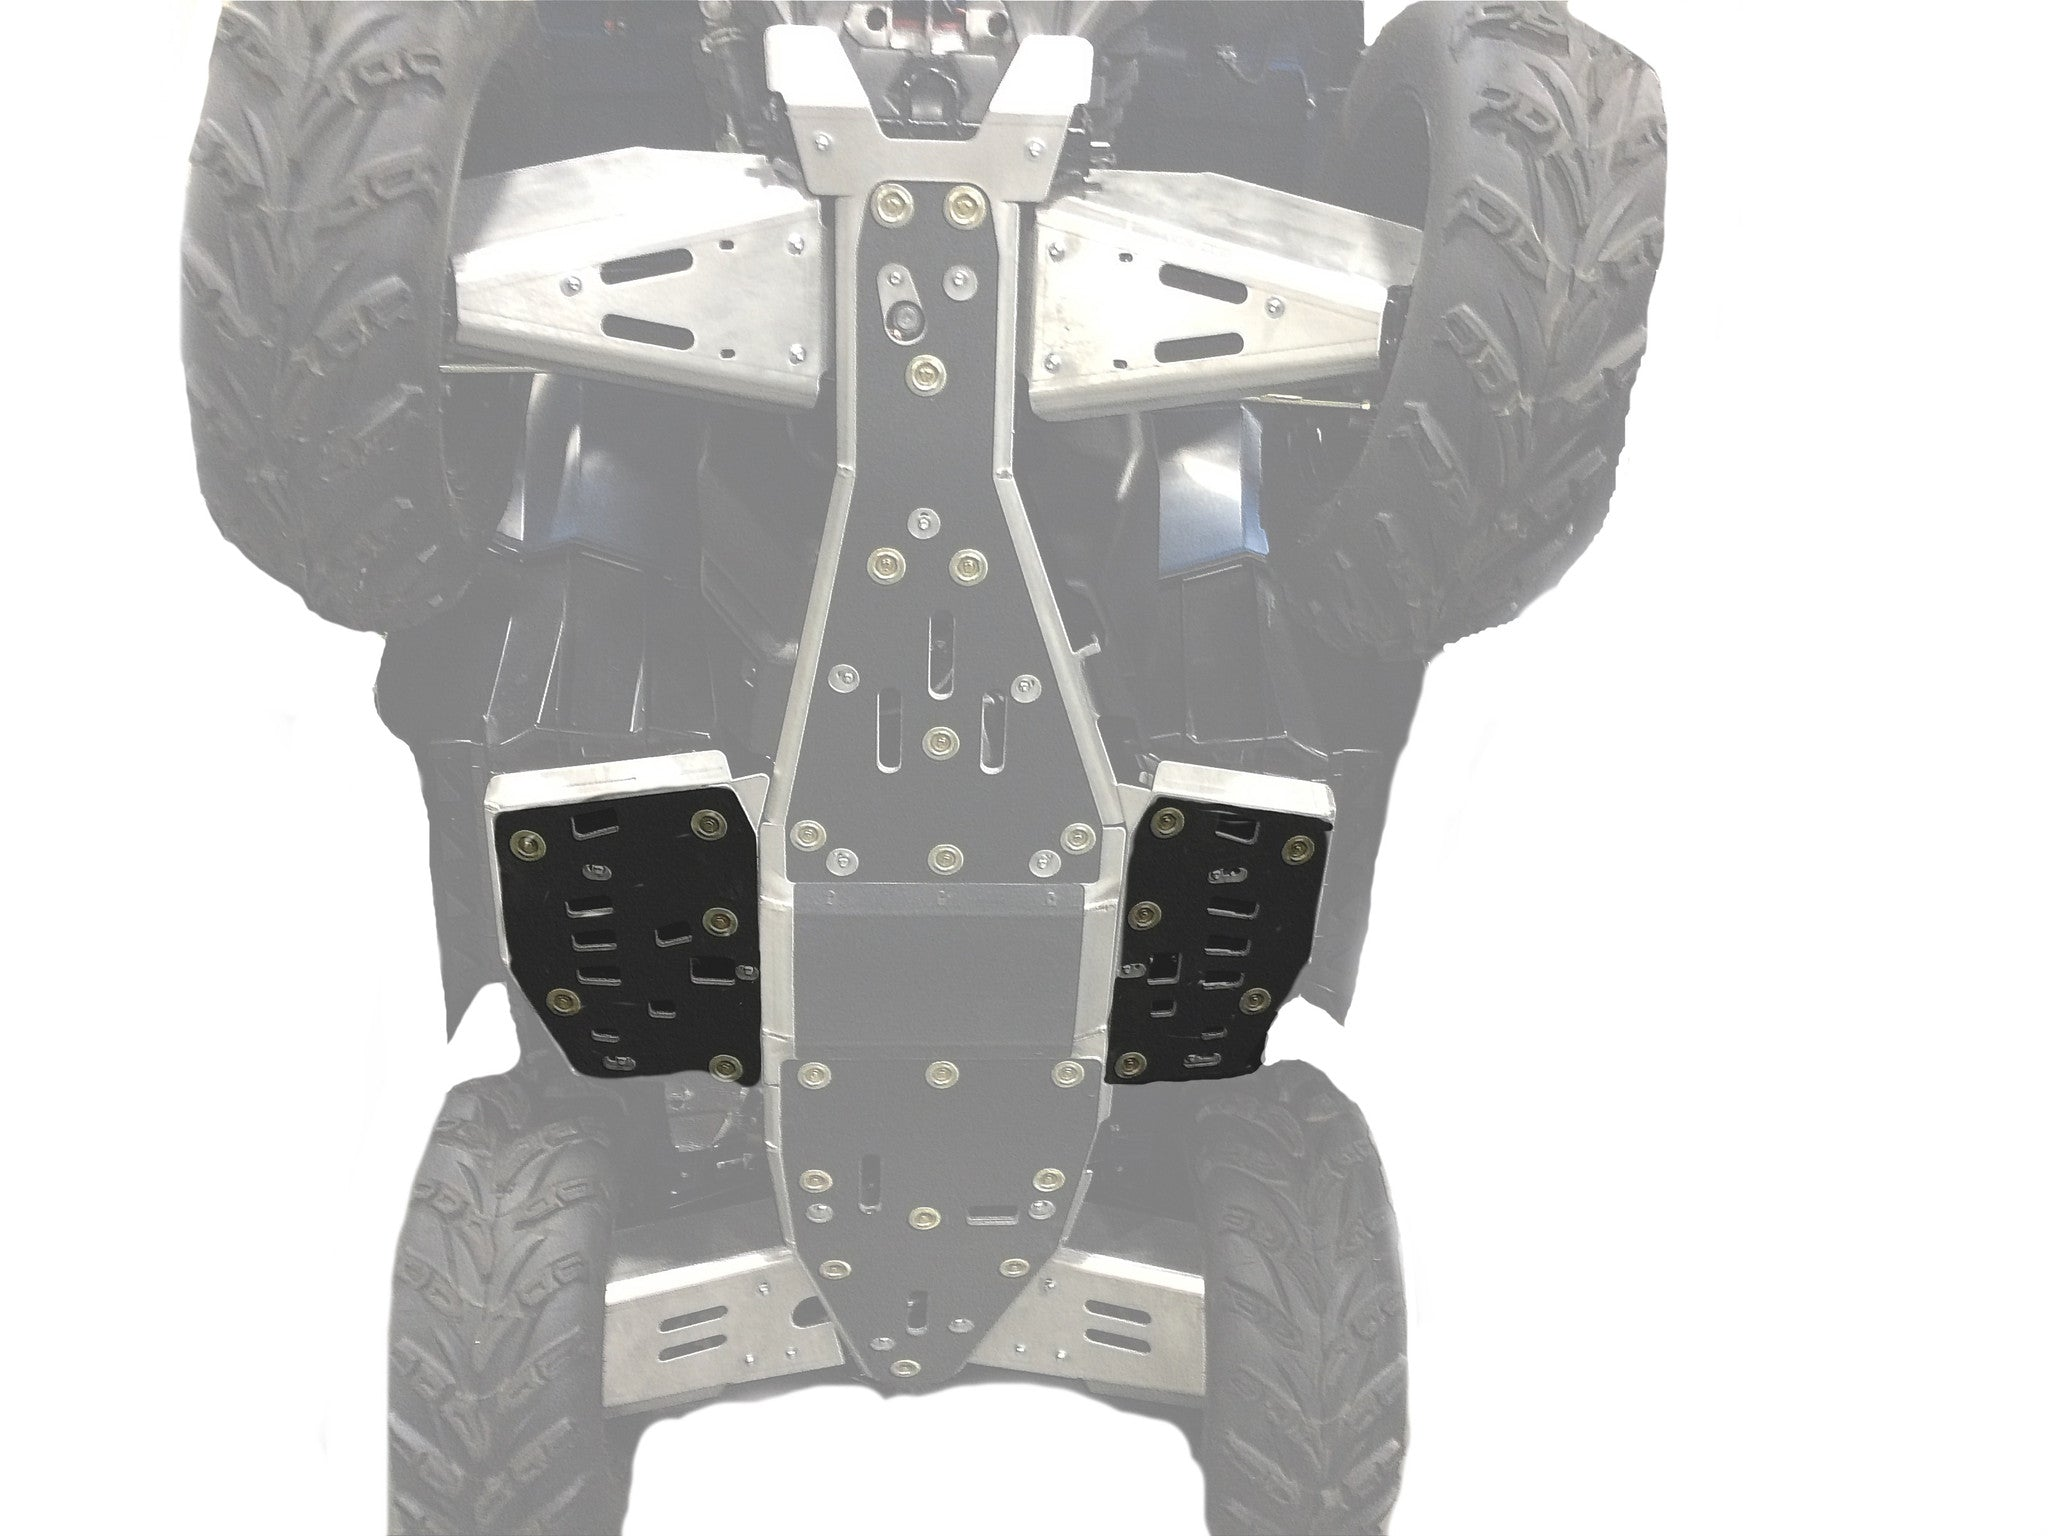 2-Piece Floor Board Skid Plate Set, Polaris Sportsman 1000 Touring